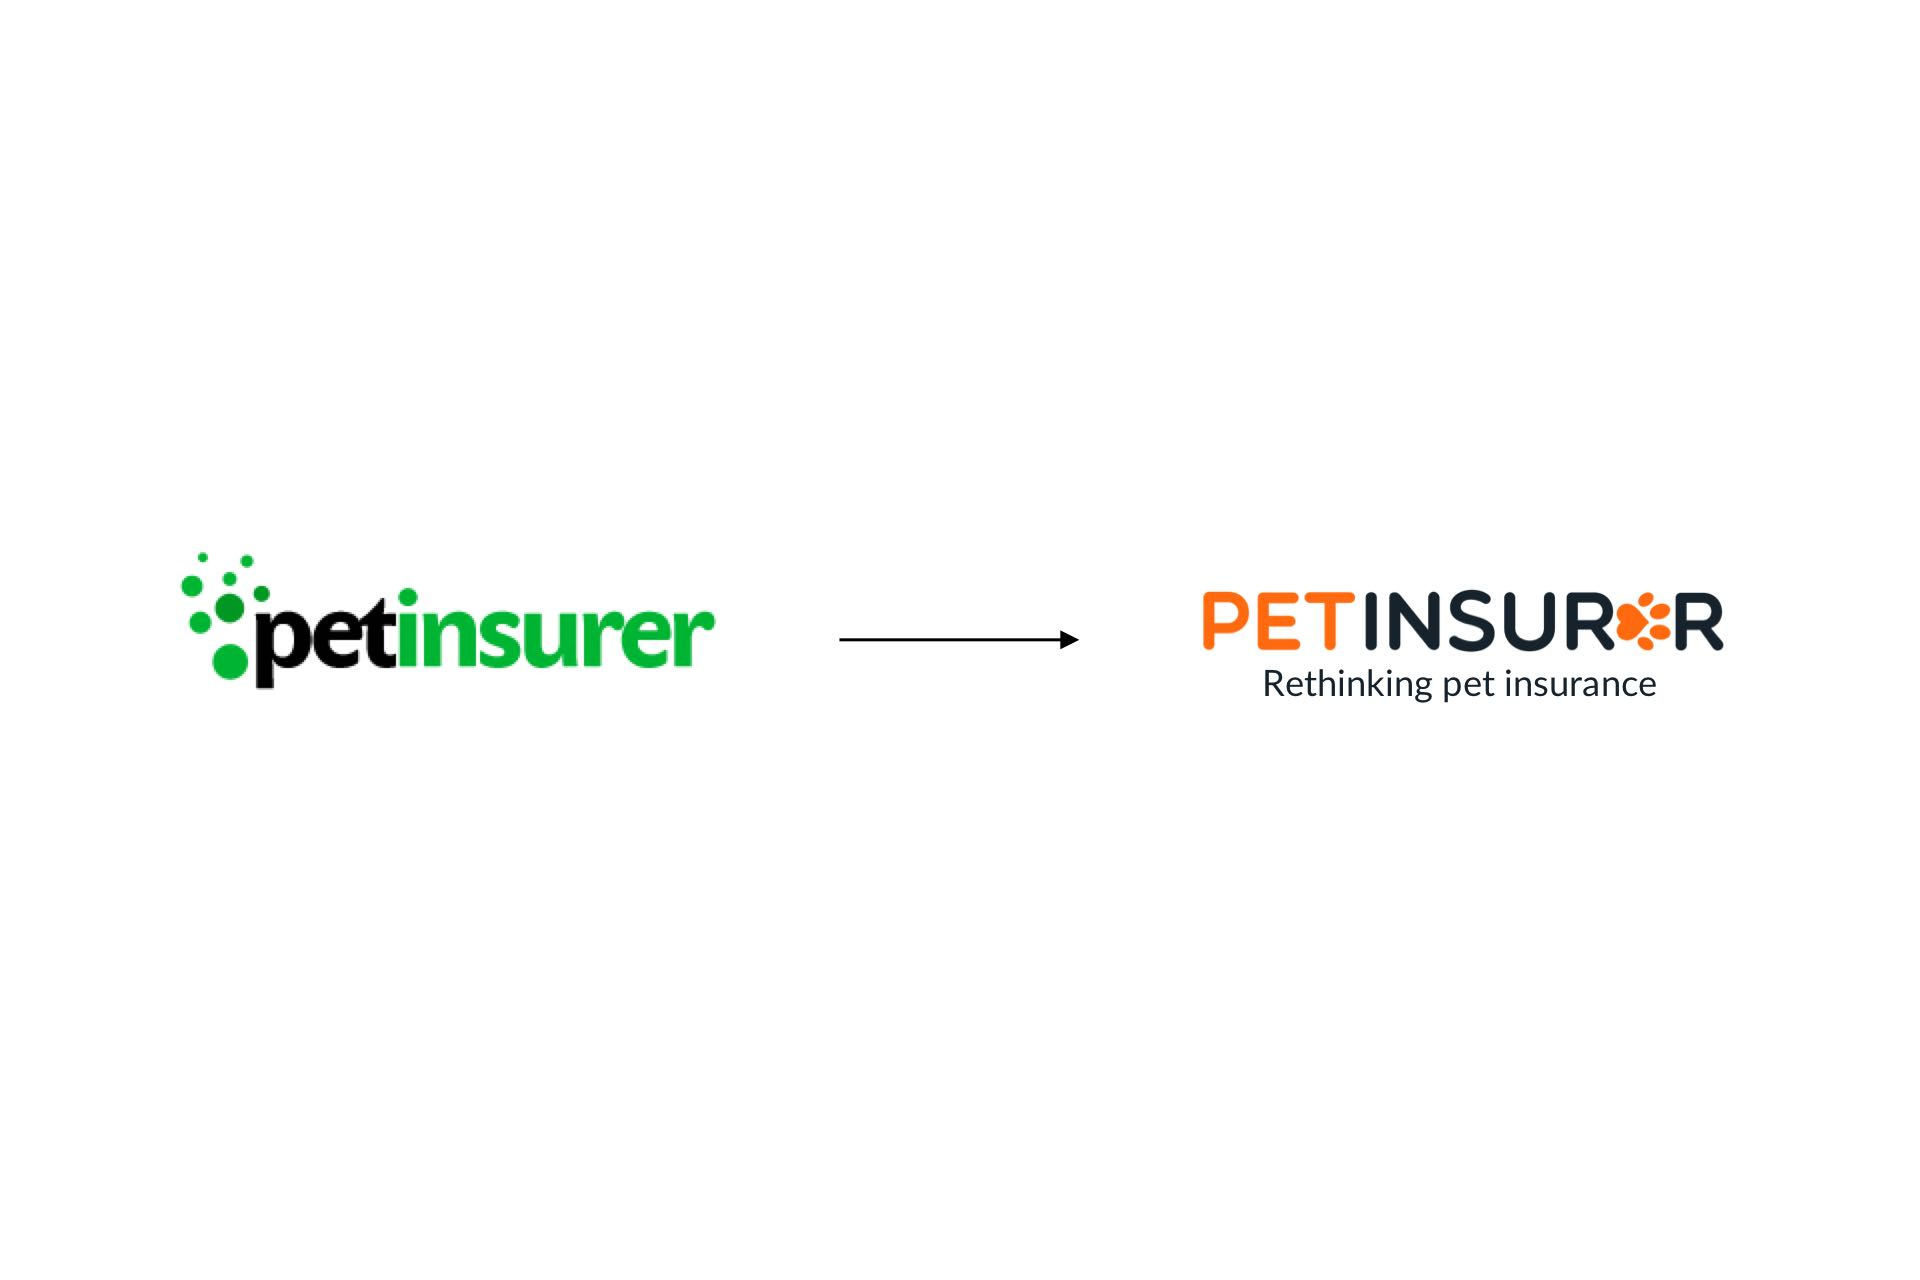 pet insurer logo before and after